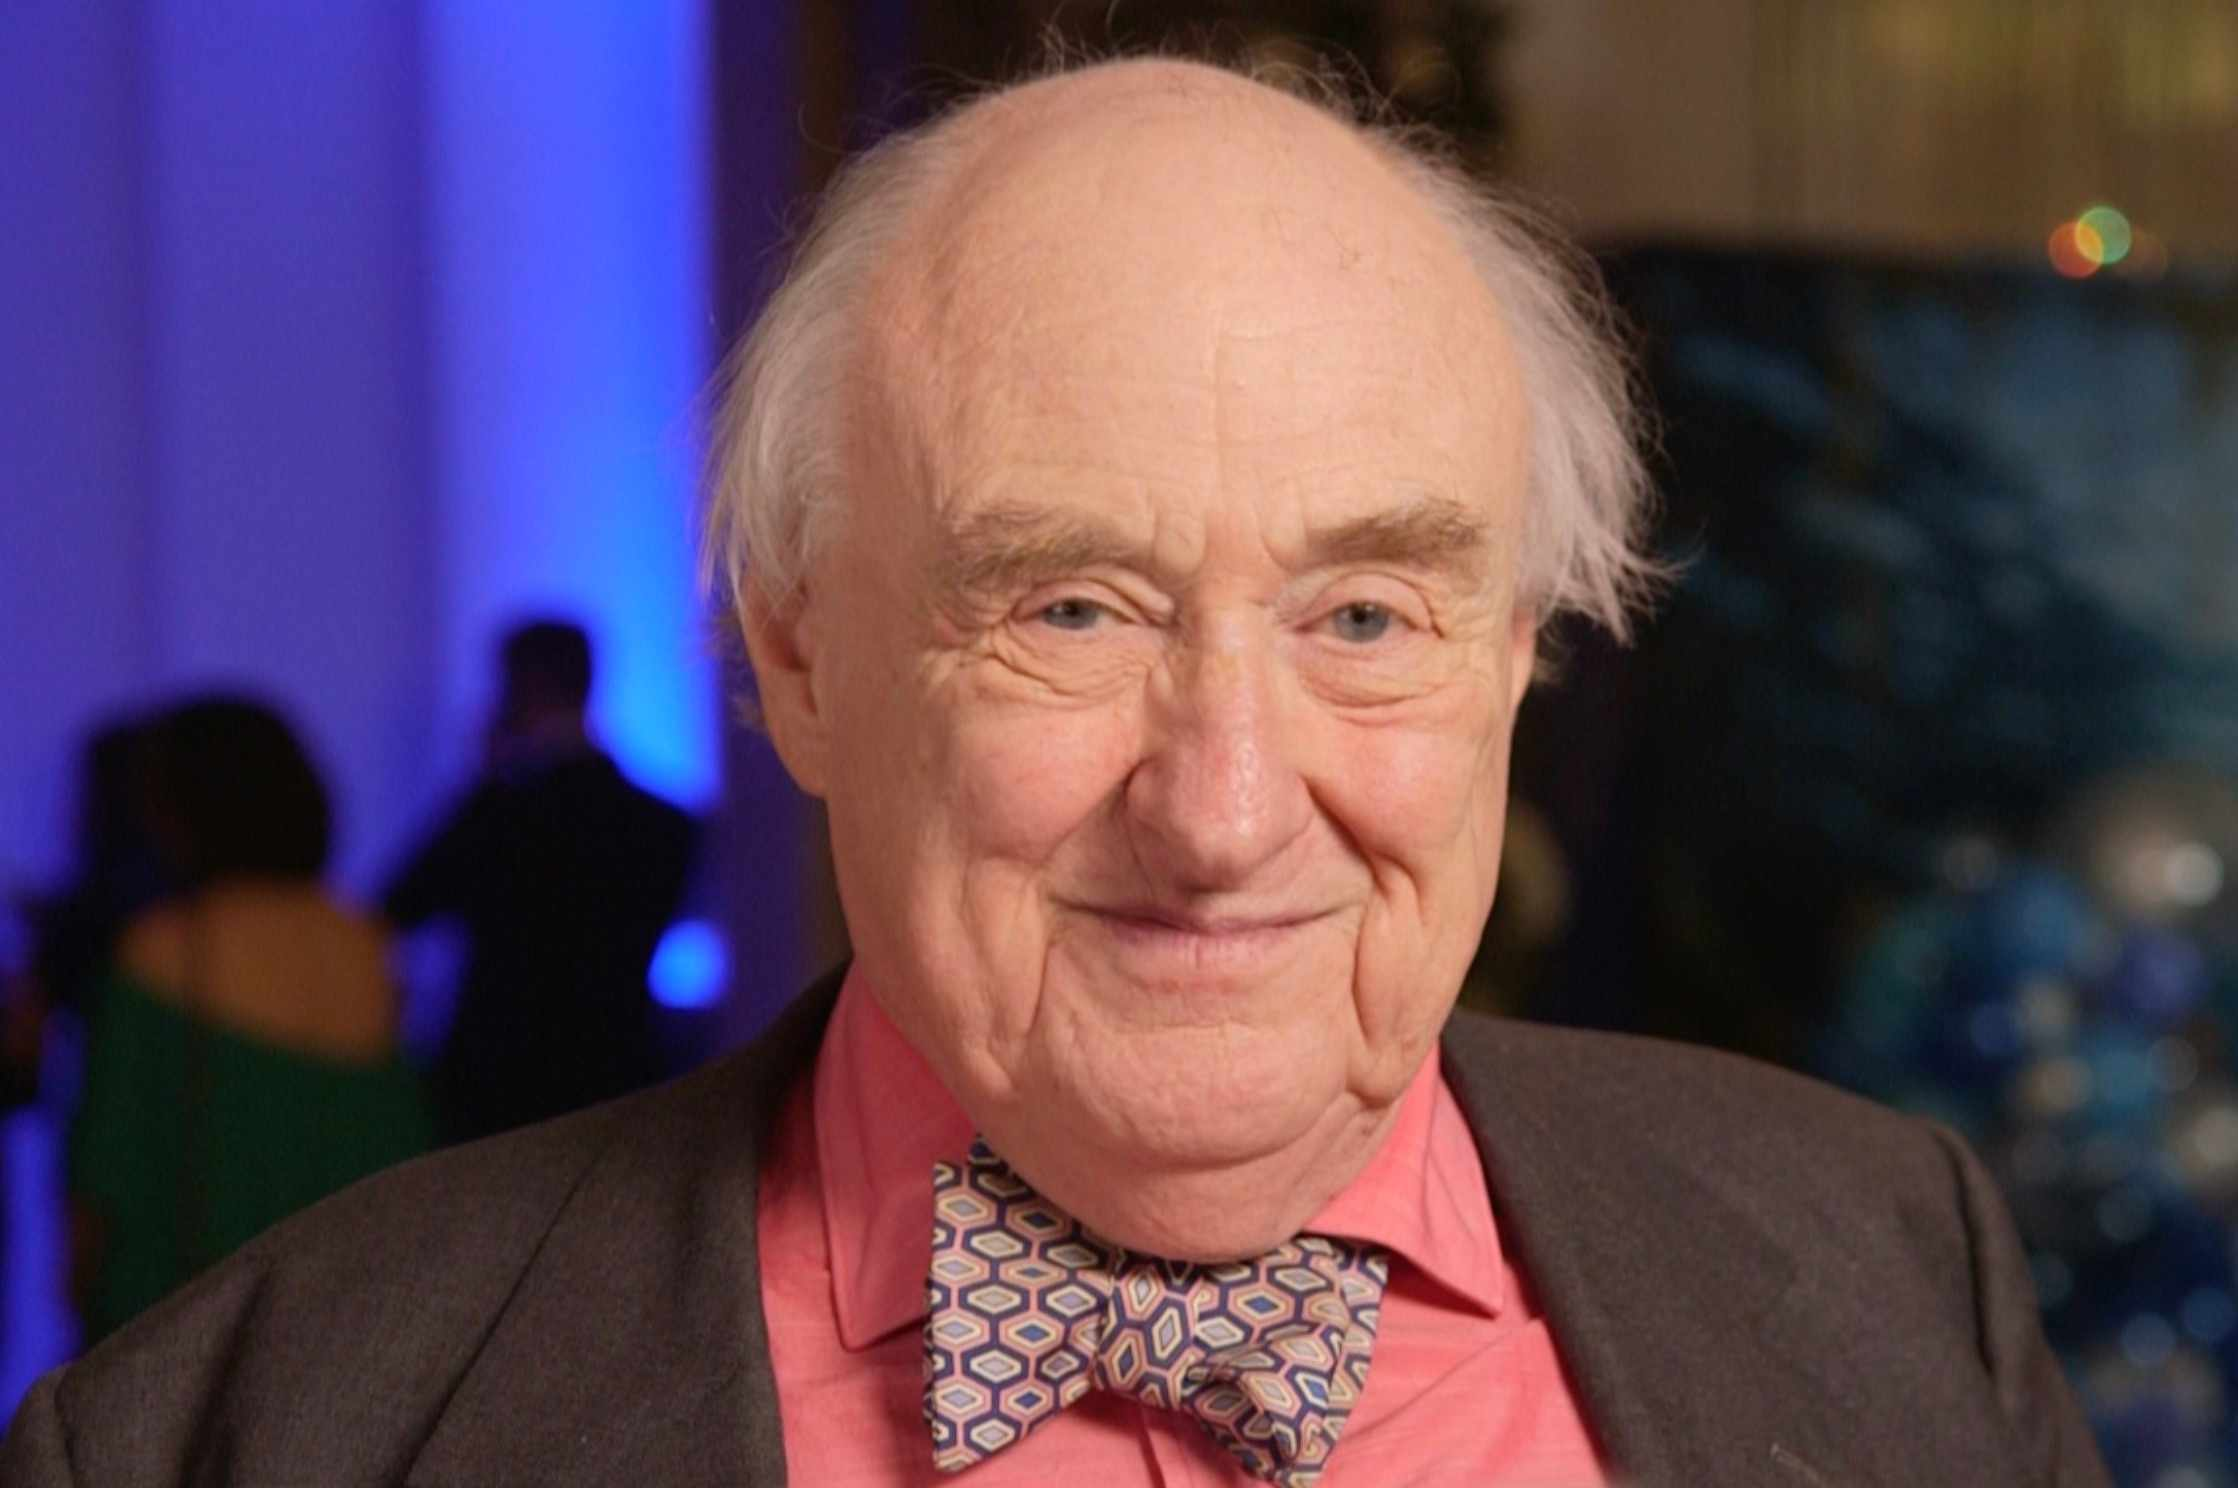 Henry Blofeld, Covers Party video screen grab, BD